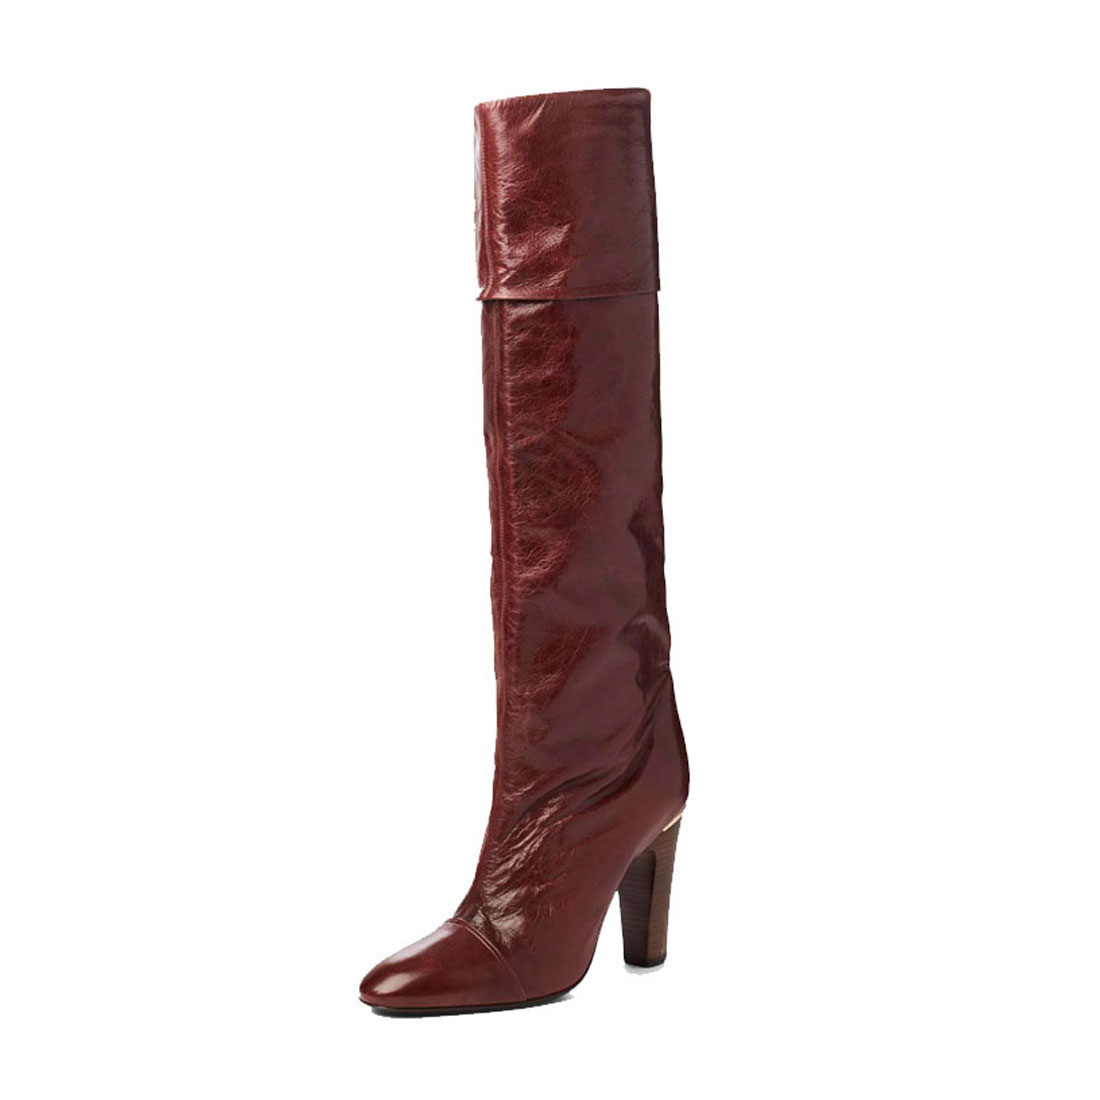 2017 Wholesale leather pointed toe women long boots thigh high boots YH1129